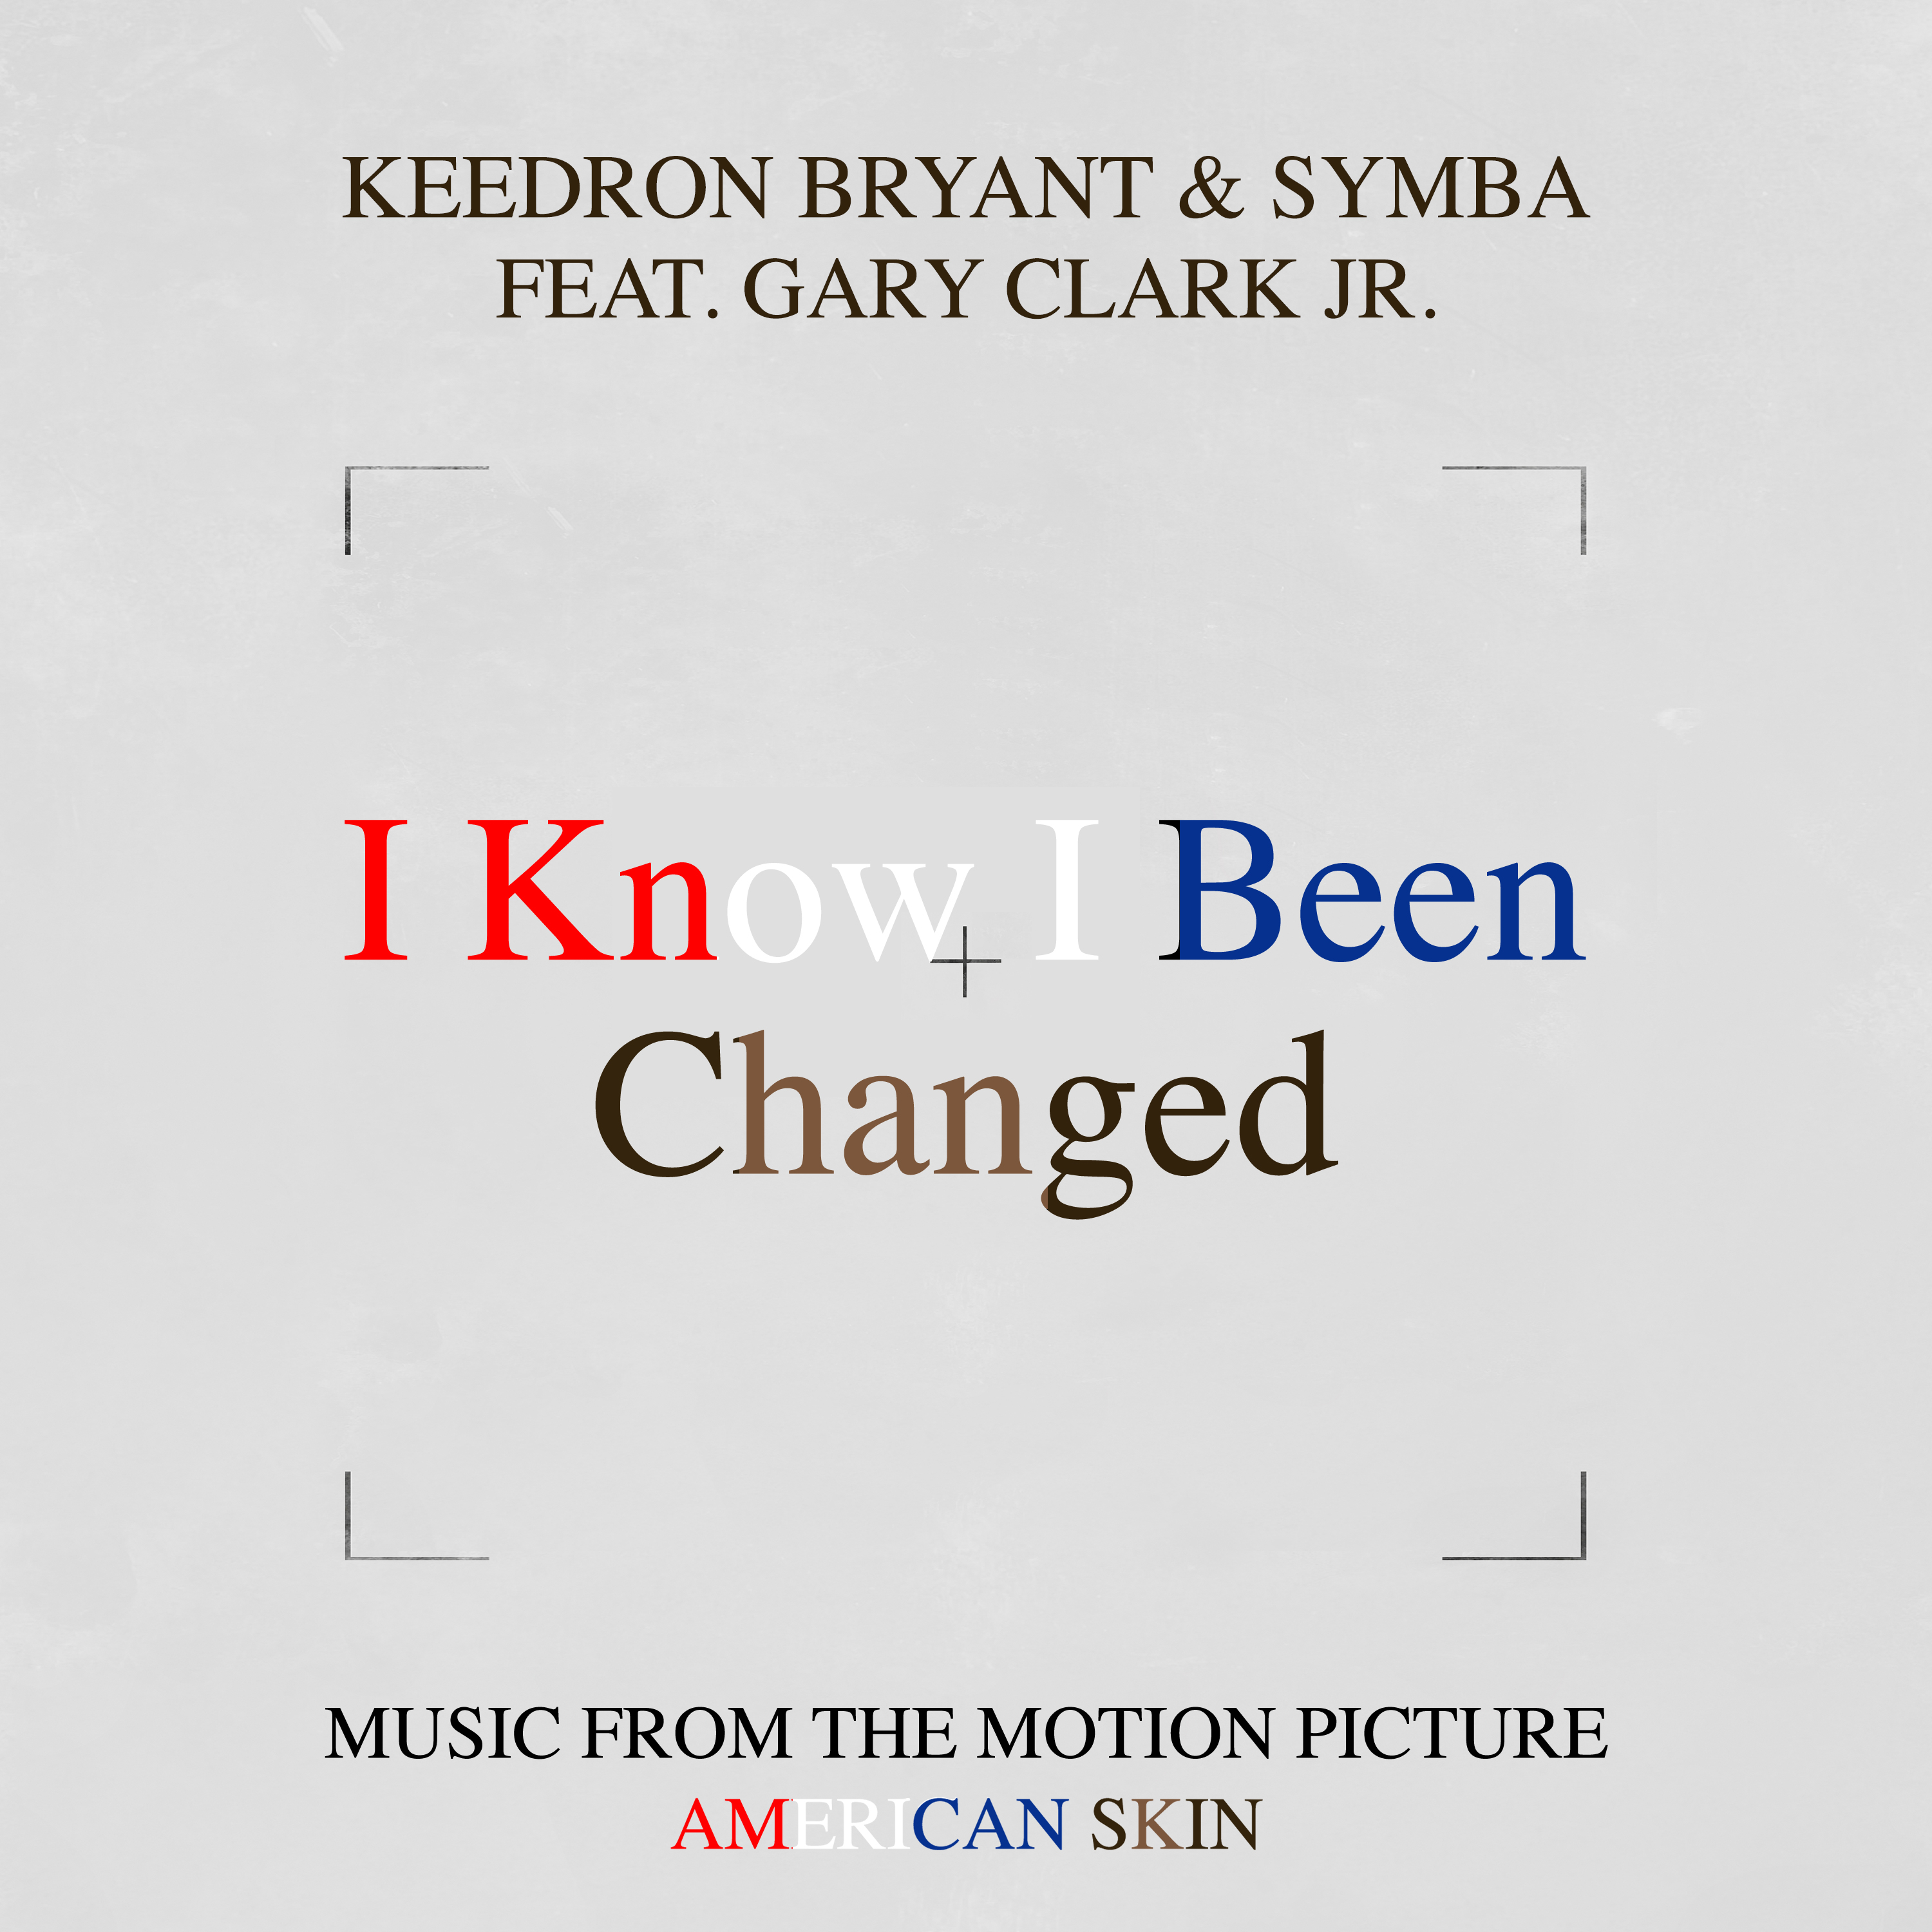 """KEEDRON BRYANT, SYMBA, AND GARY CLARK JR. - """"I KNOW I BEEN CHANGED"""""""